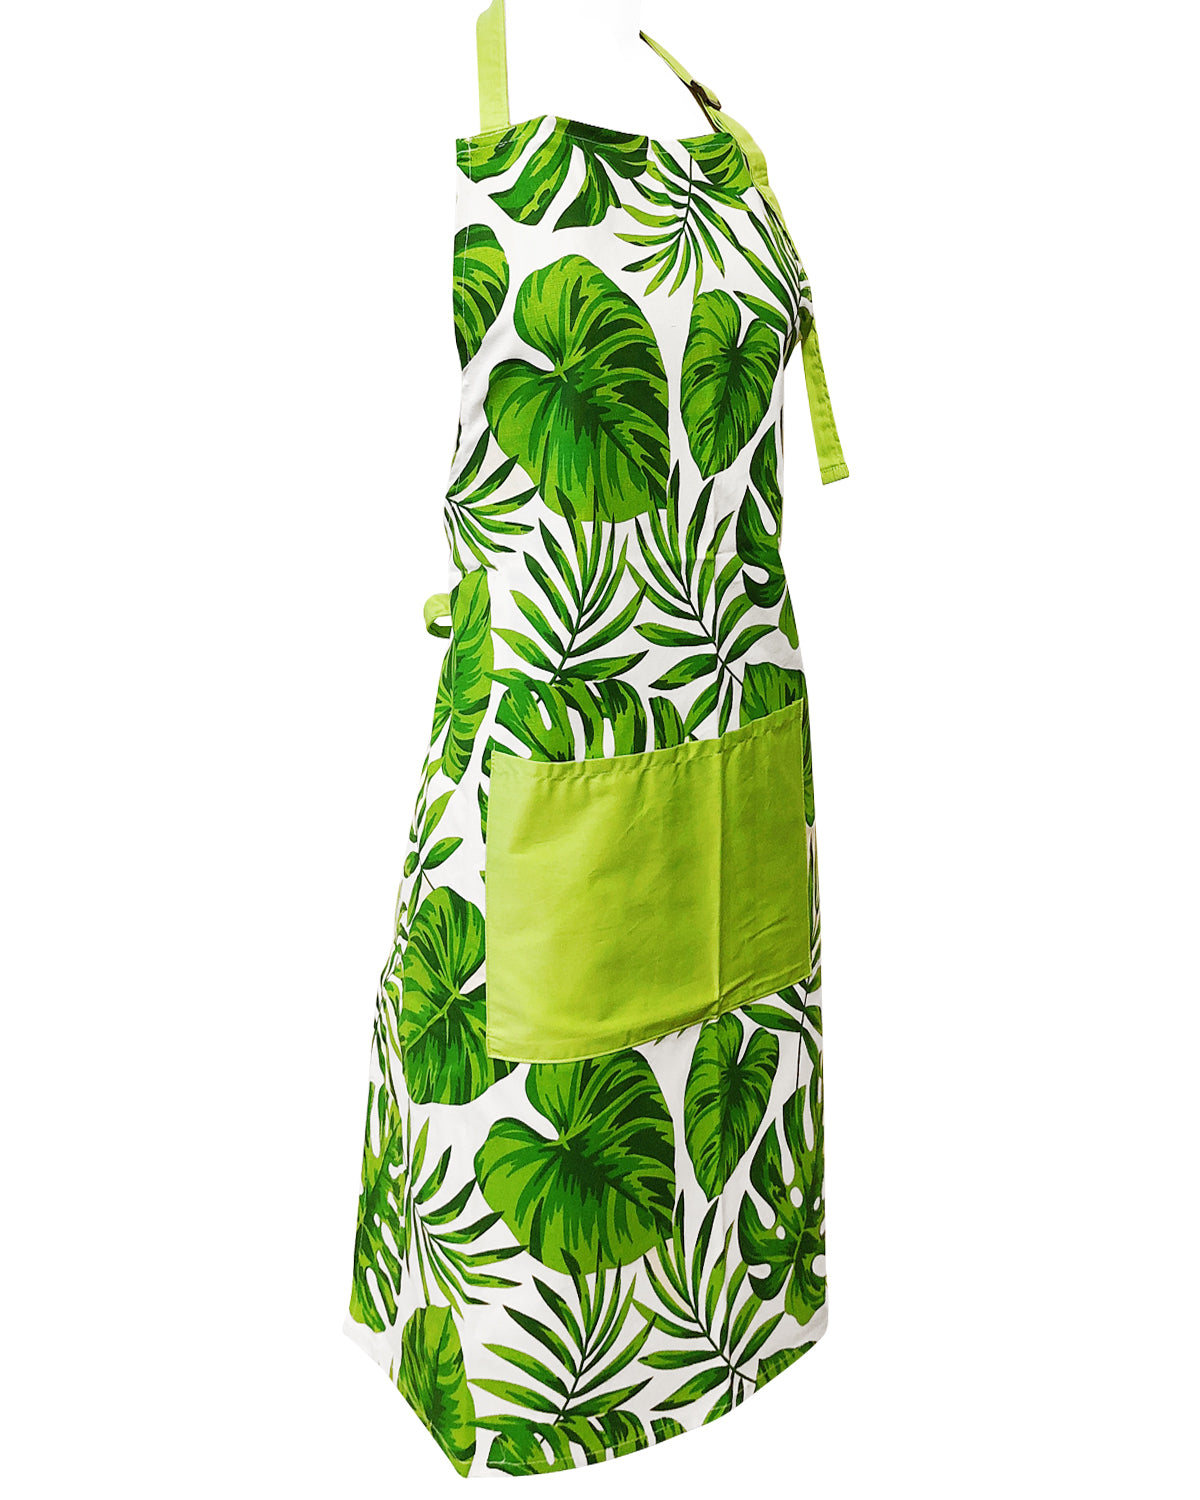 Wrapables® Green Fern Leaves Unisex Apron